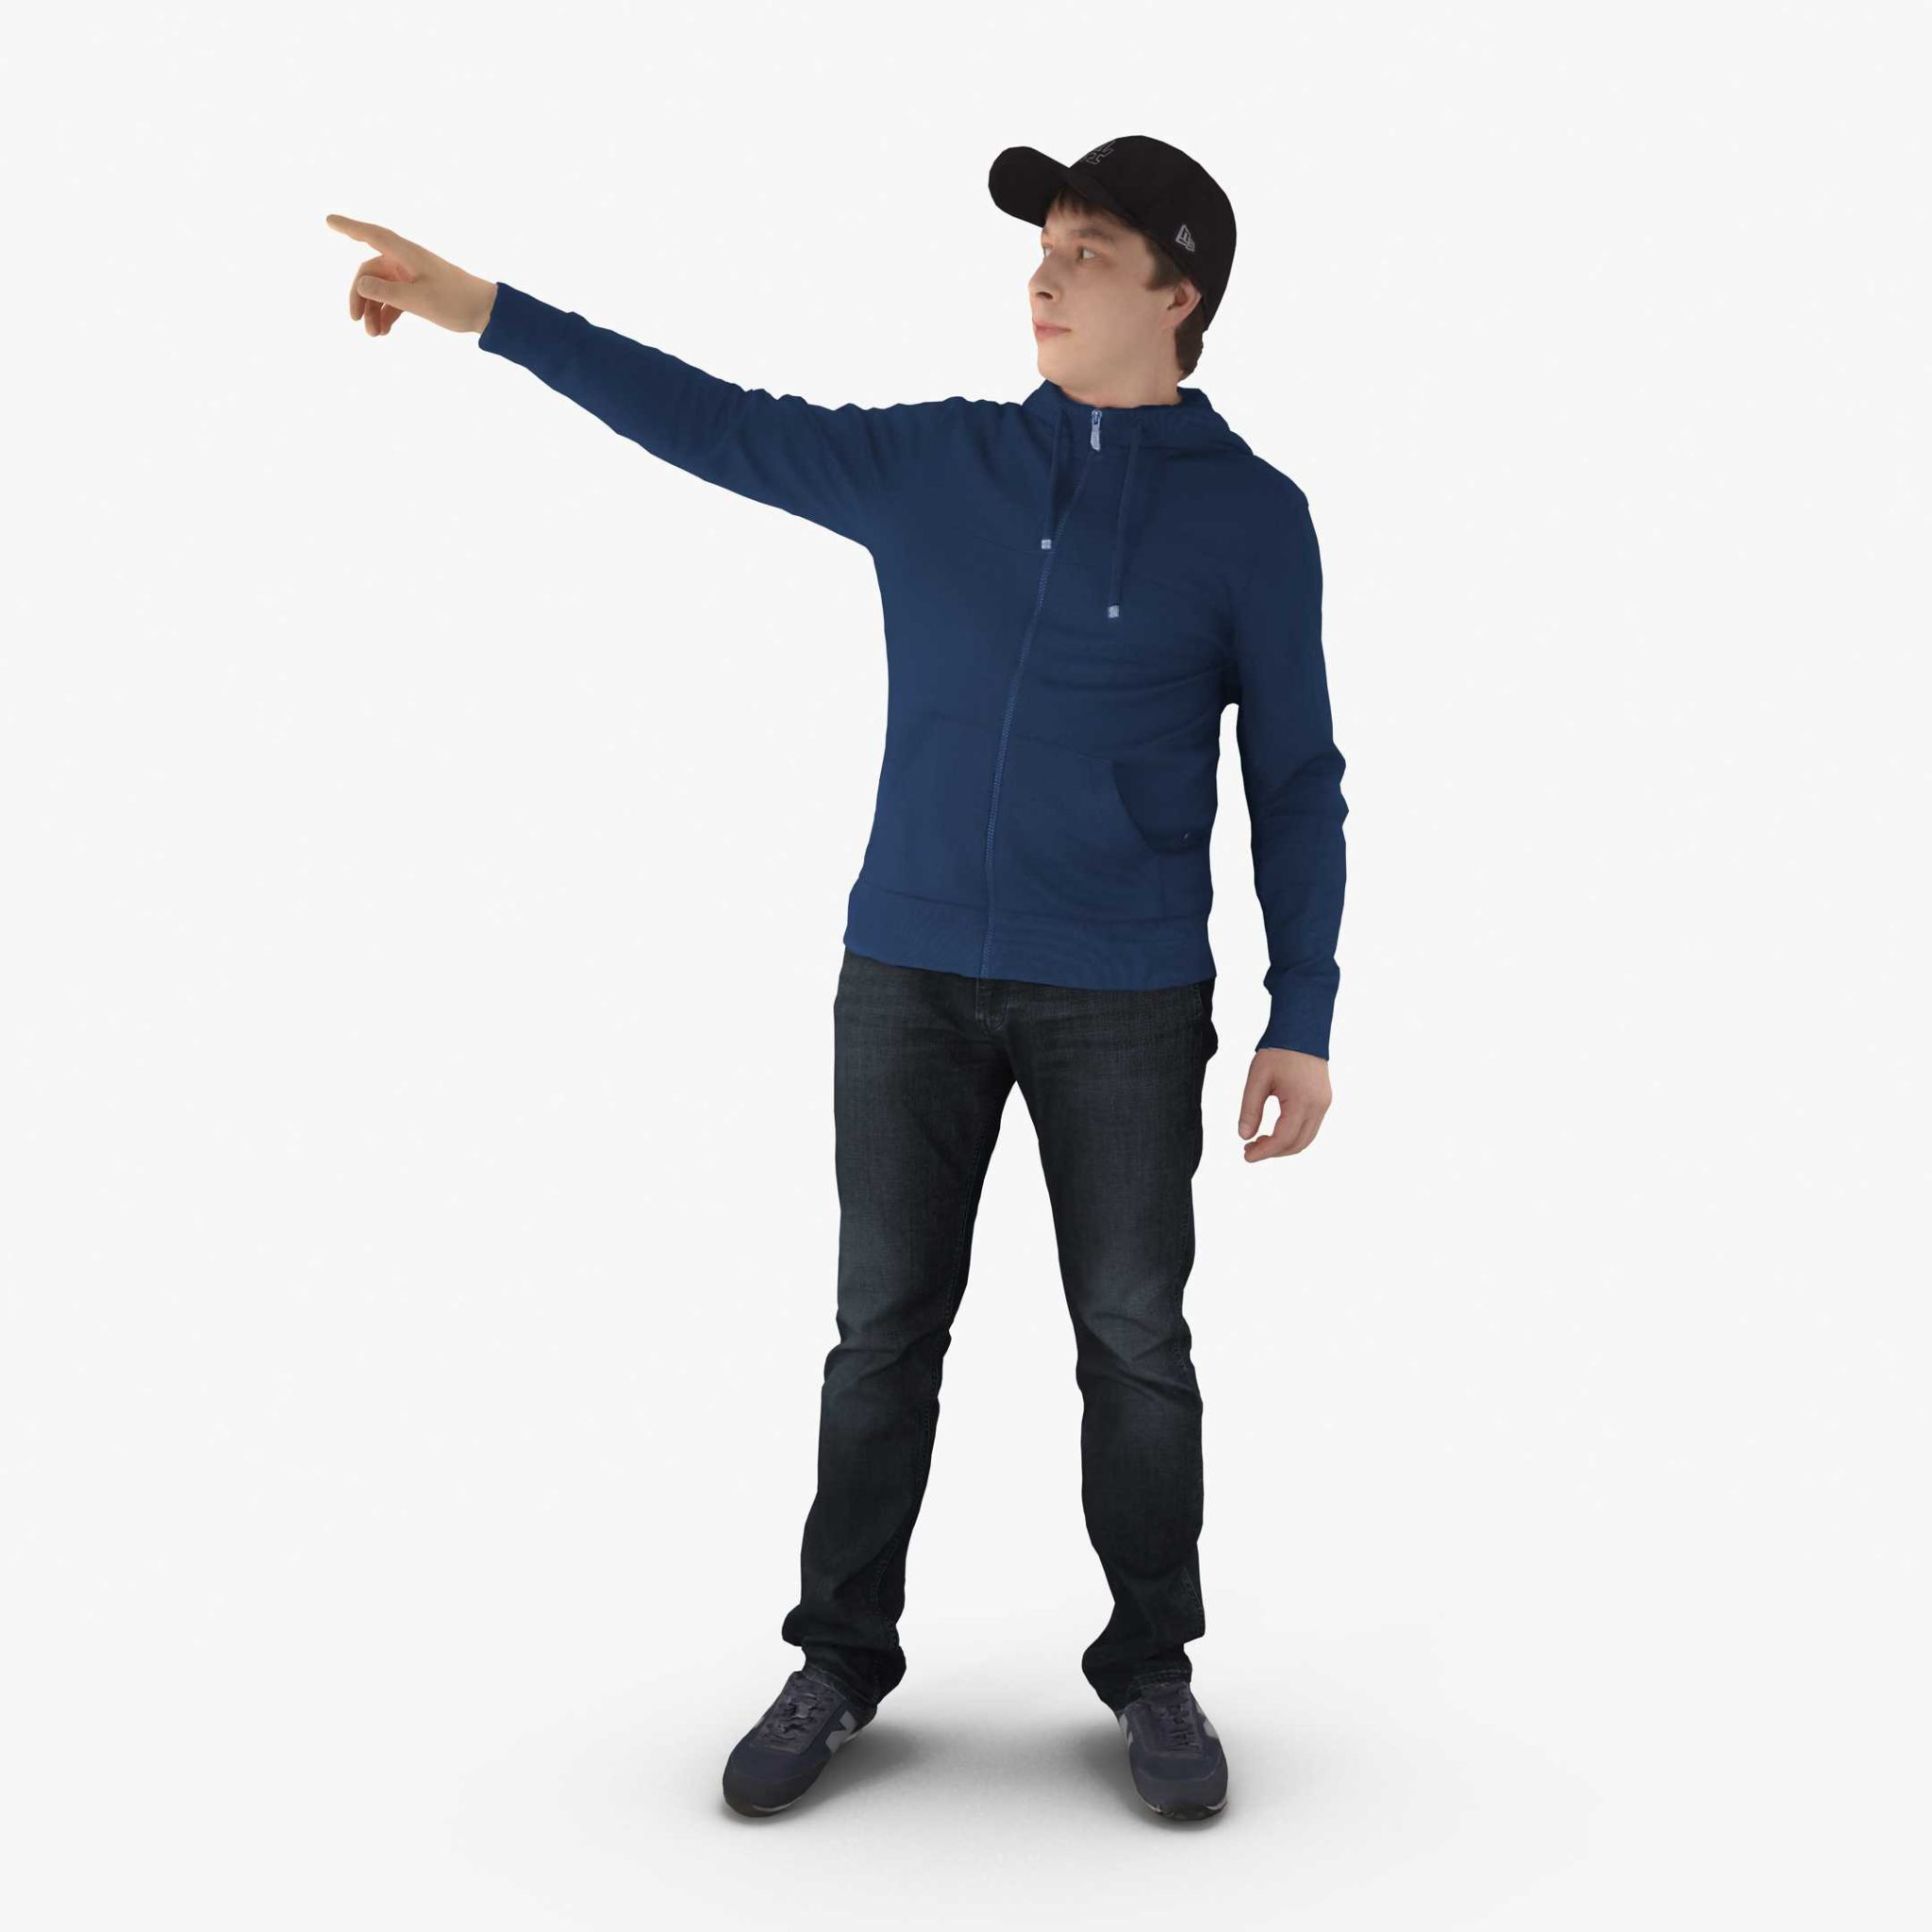 Casual Man Pointing 3D Model, for download files in 3ds, max, obj, fbx with low poly, game, and VR/AR options. Ready for 3D Printing.